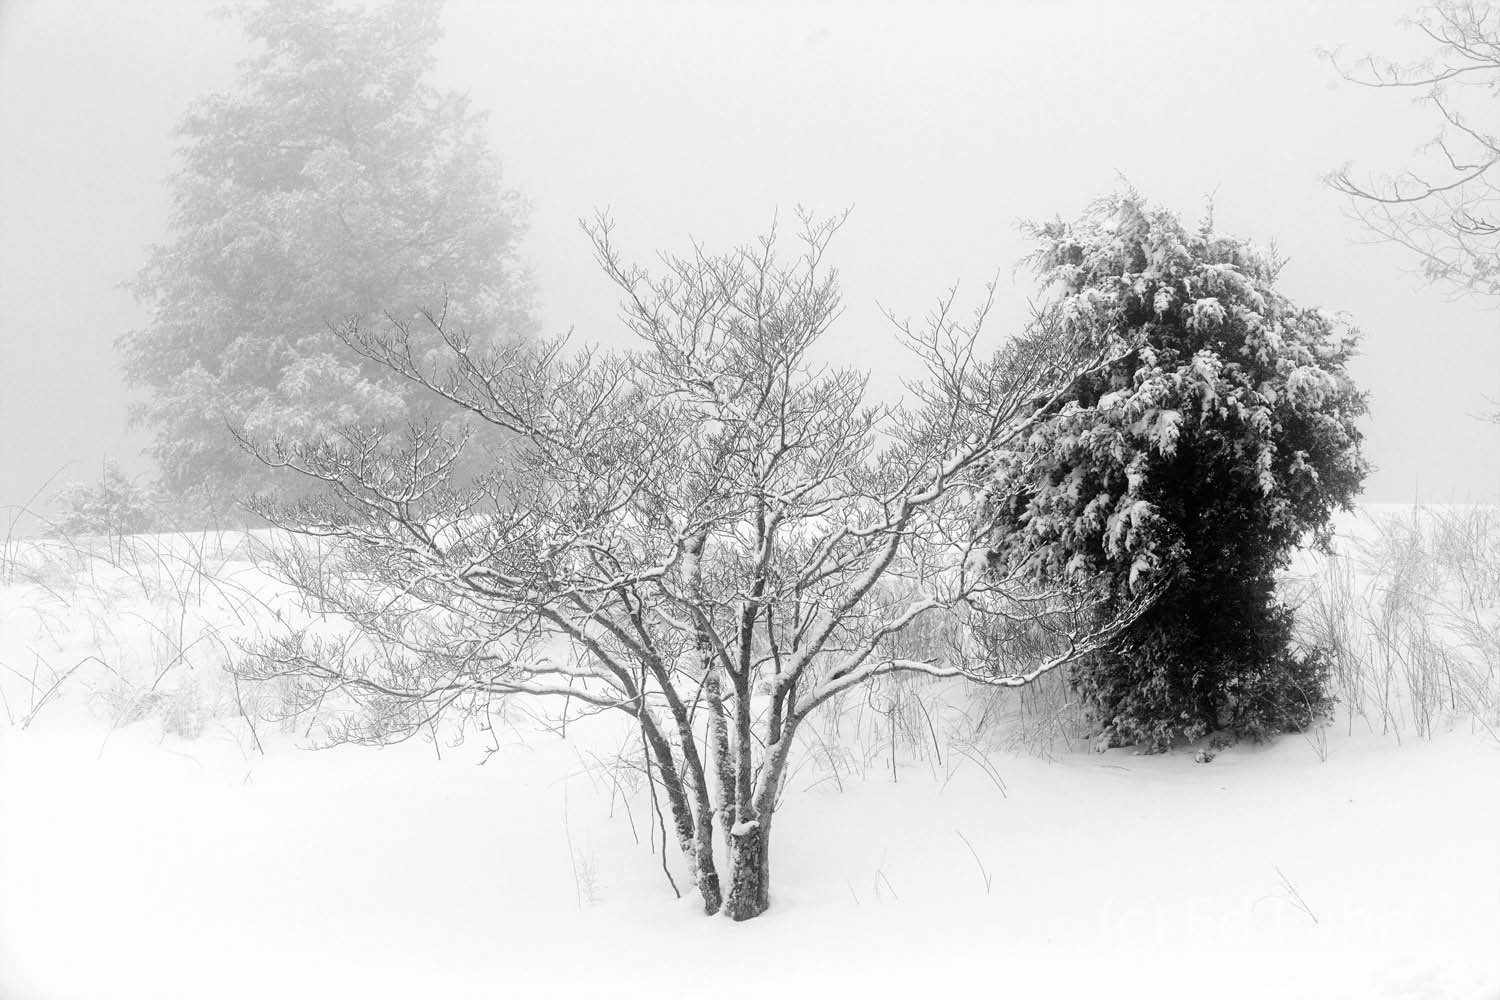 This one is for an old friend.   In the clarity of winter, a sense of balance among the contrasting forms.